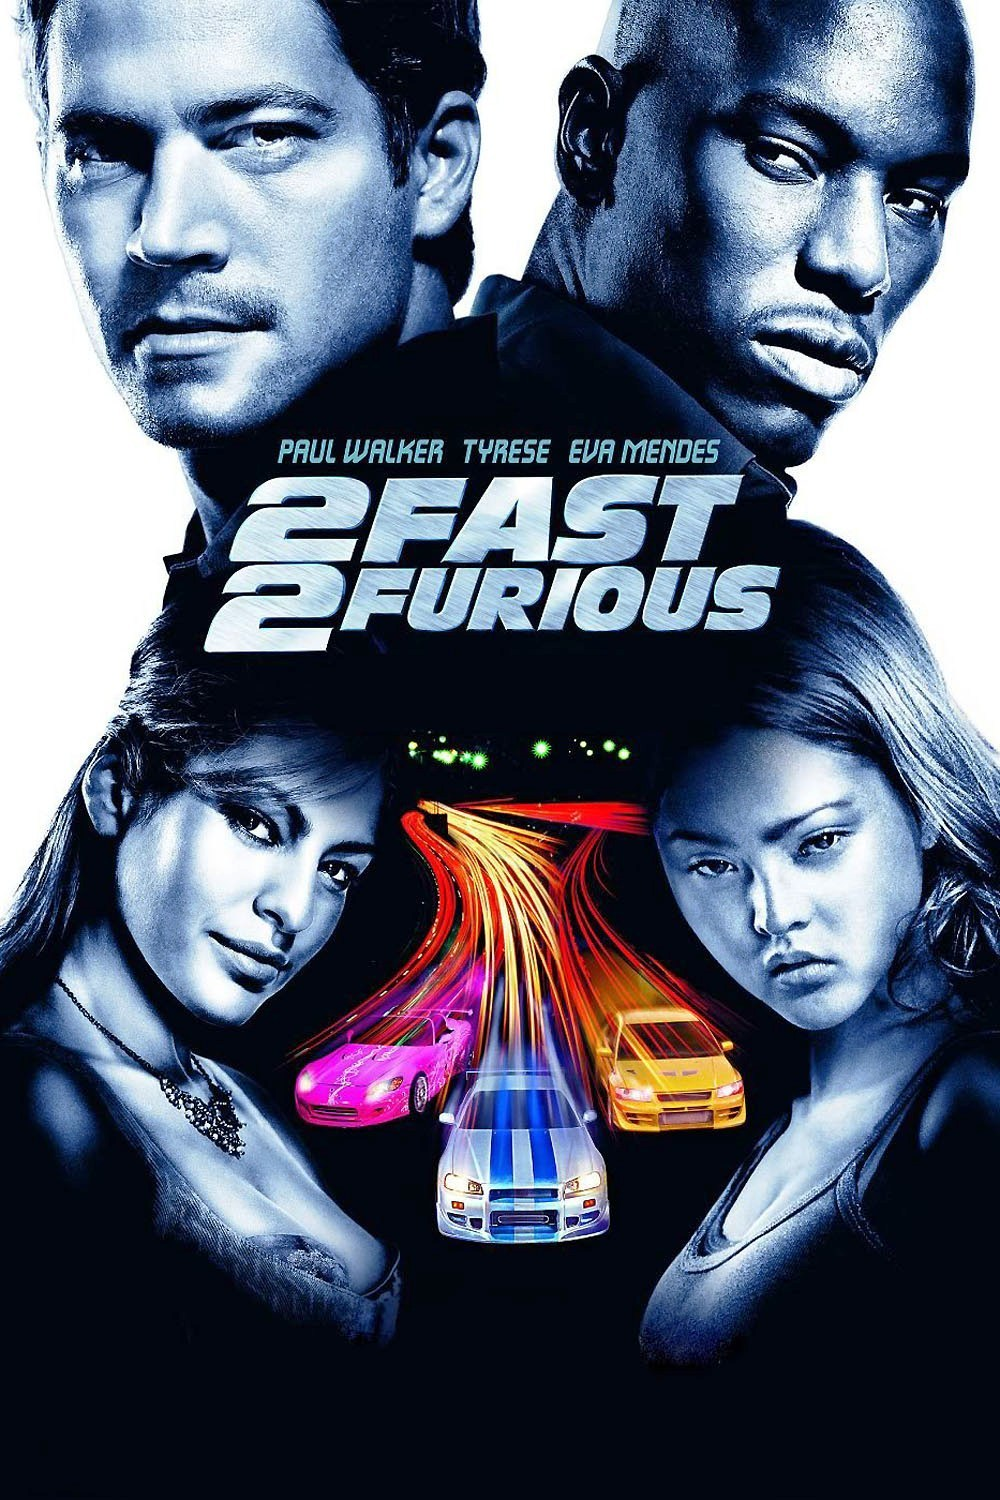 2 fast 2 furious movie download